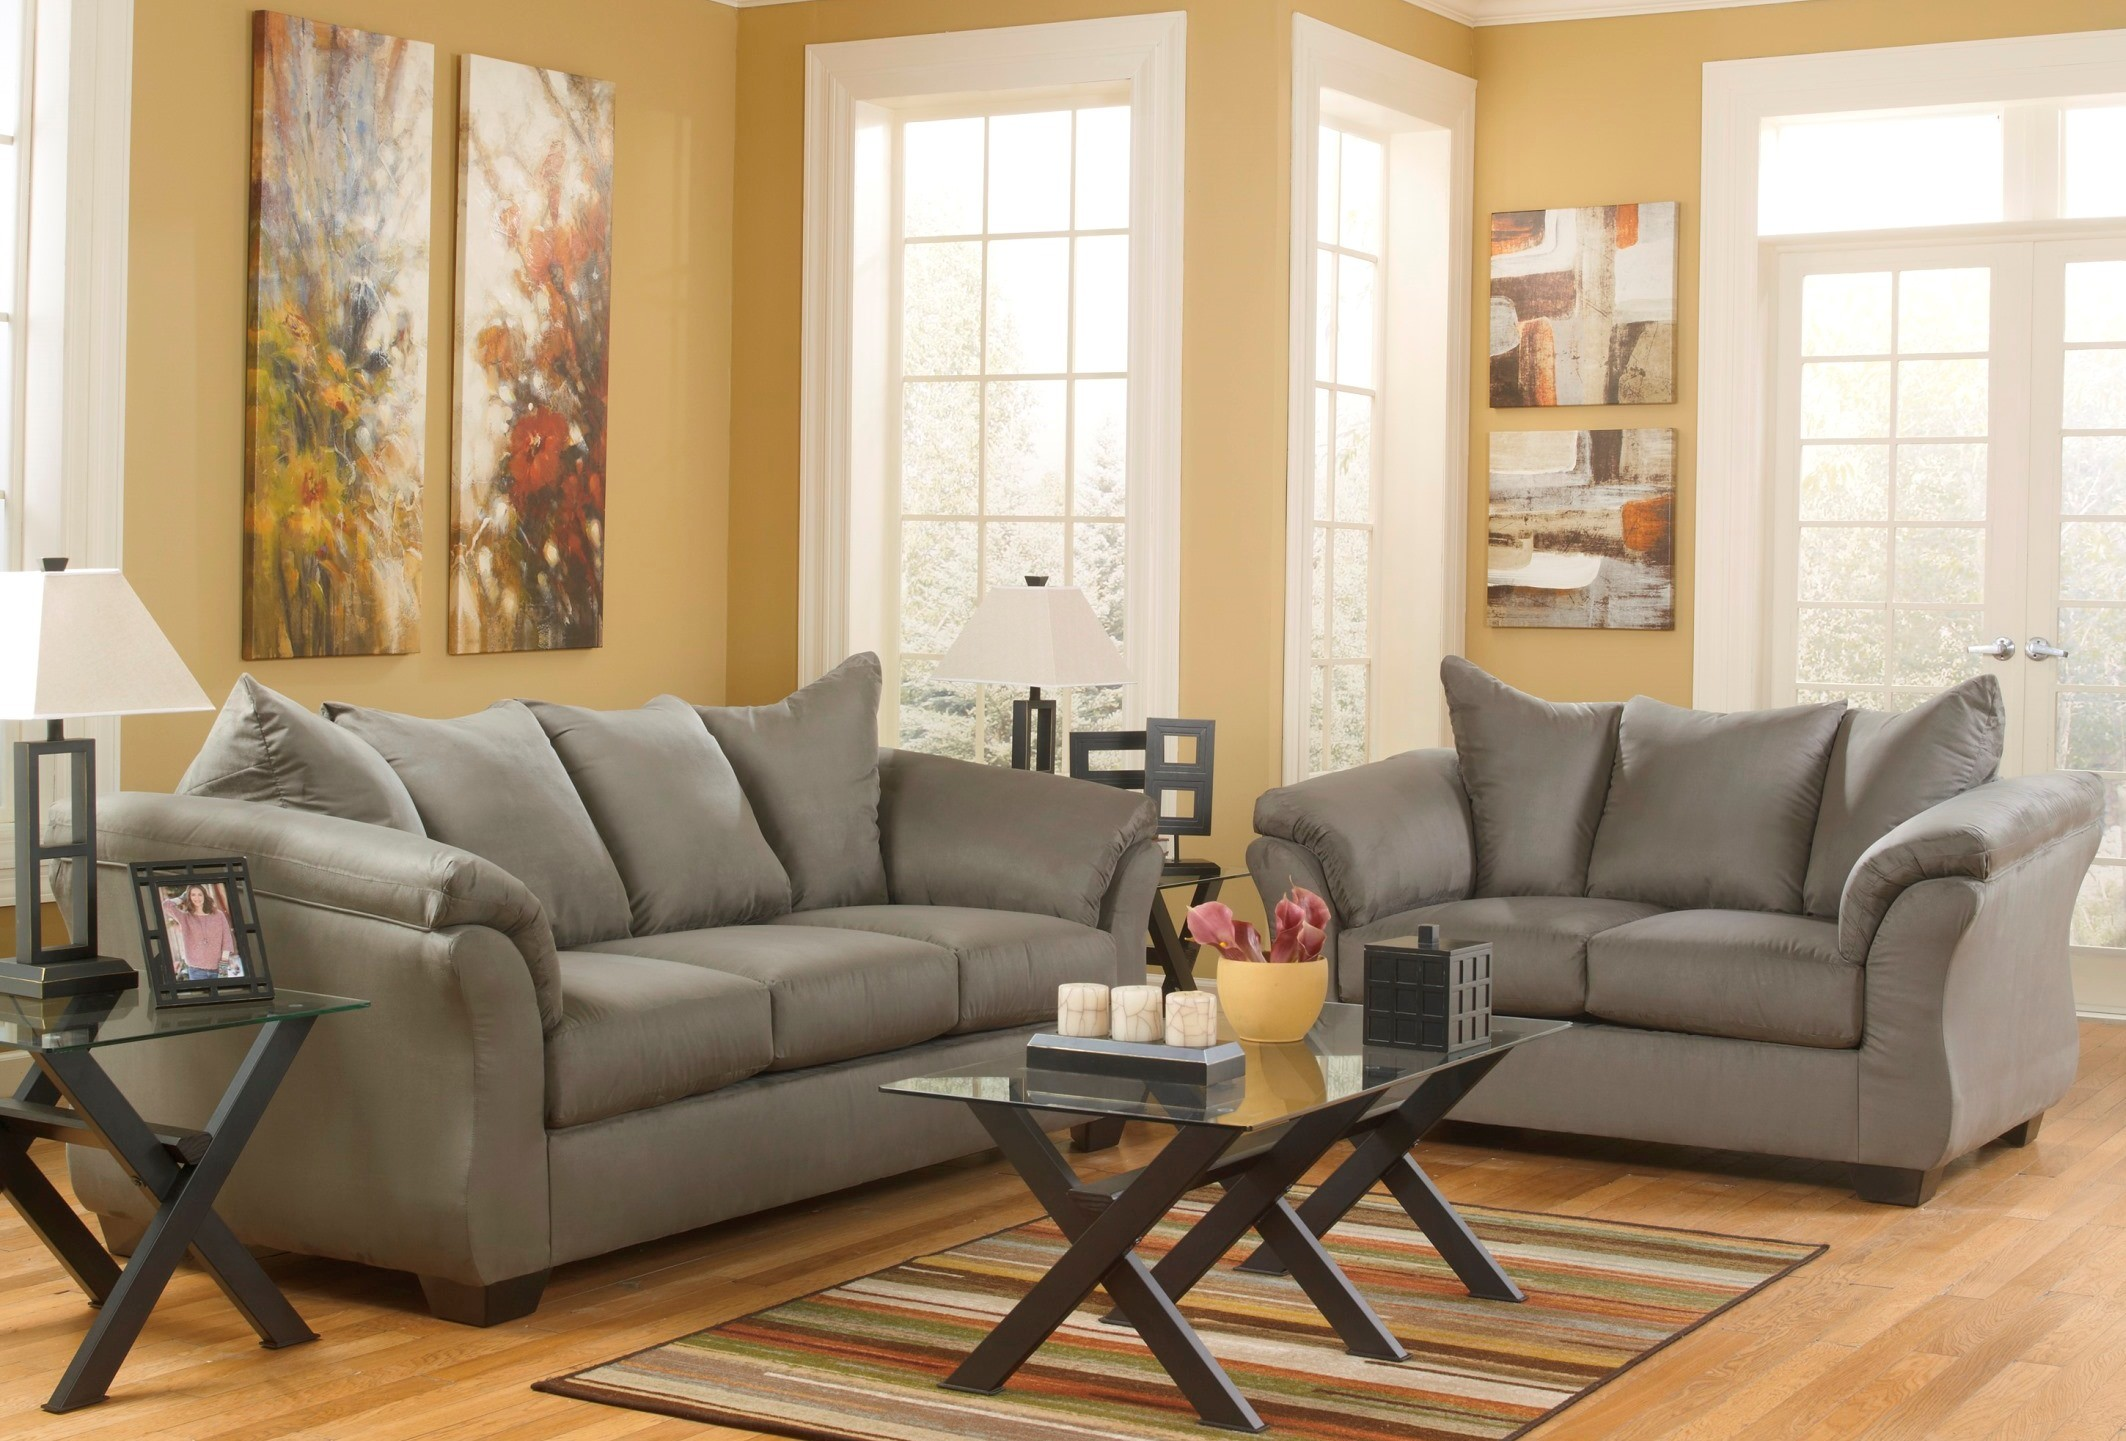 Darcy Cobblestone Living Room Set From Ashley 75005 38 35 Coleman Furniture